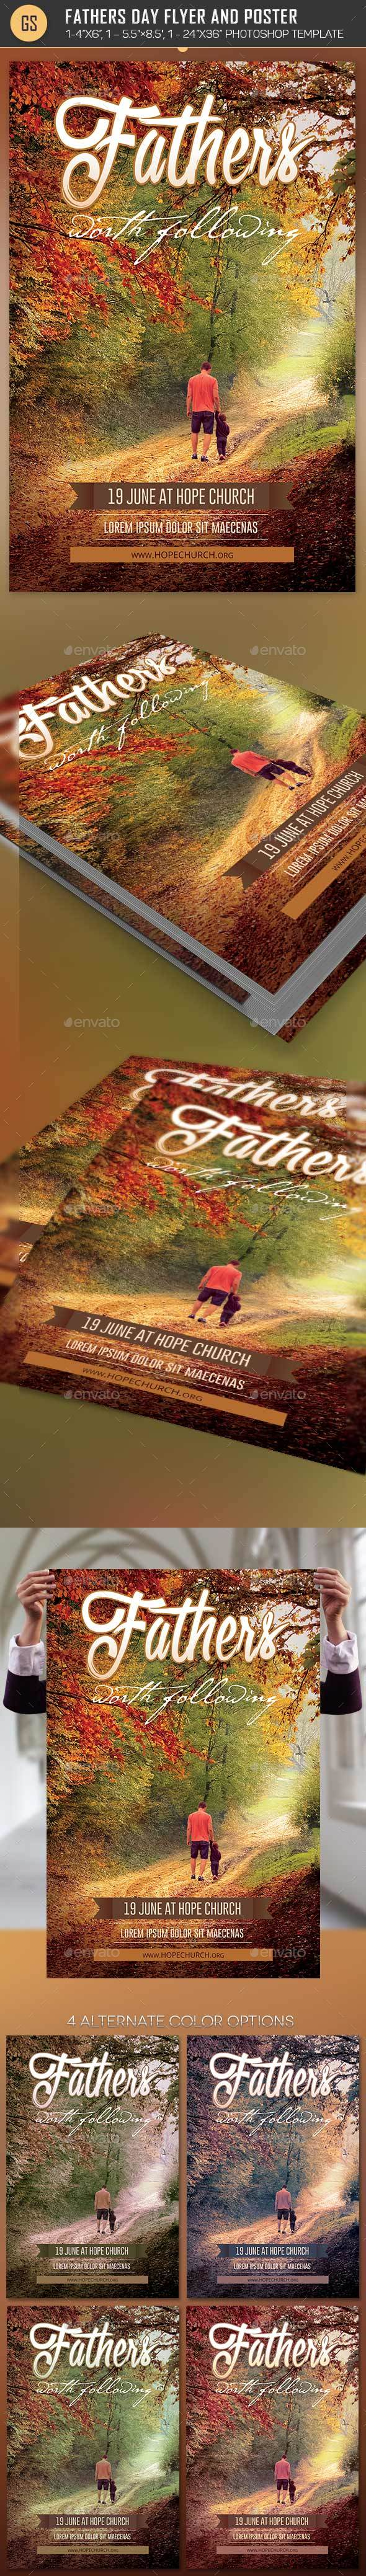 Fathers Day Flyer Poster Template - Church Flyers